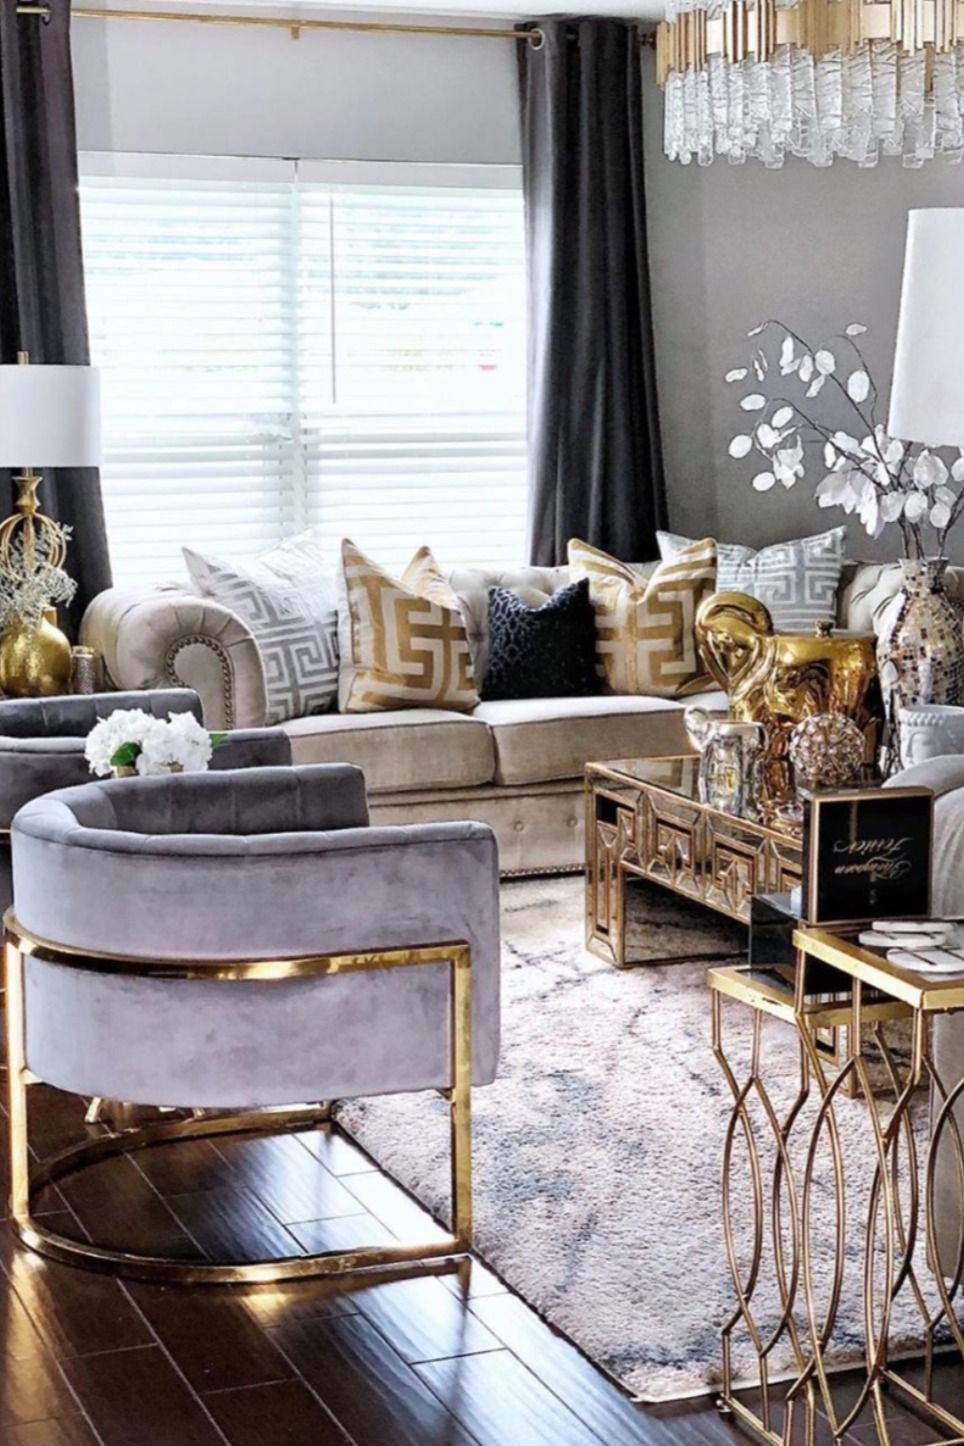 Beauteous Living Room Modern Design Ideas On Extraordinary Gold Grand Elephant Candle On Living Room Modern Design Ideas